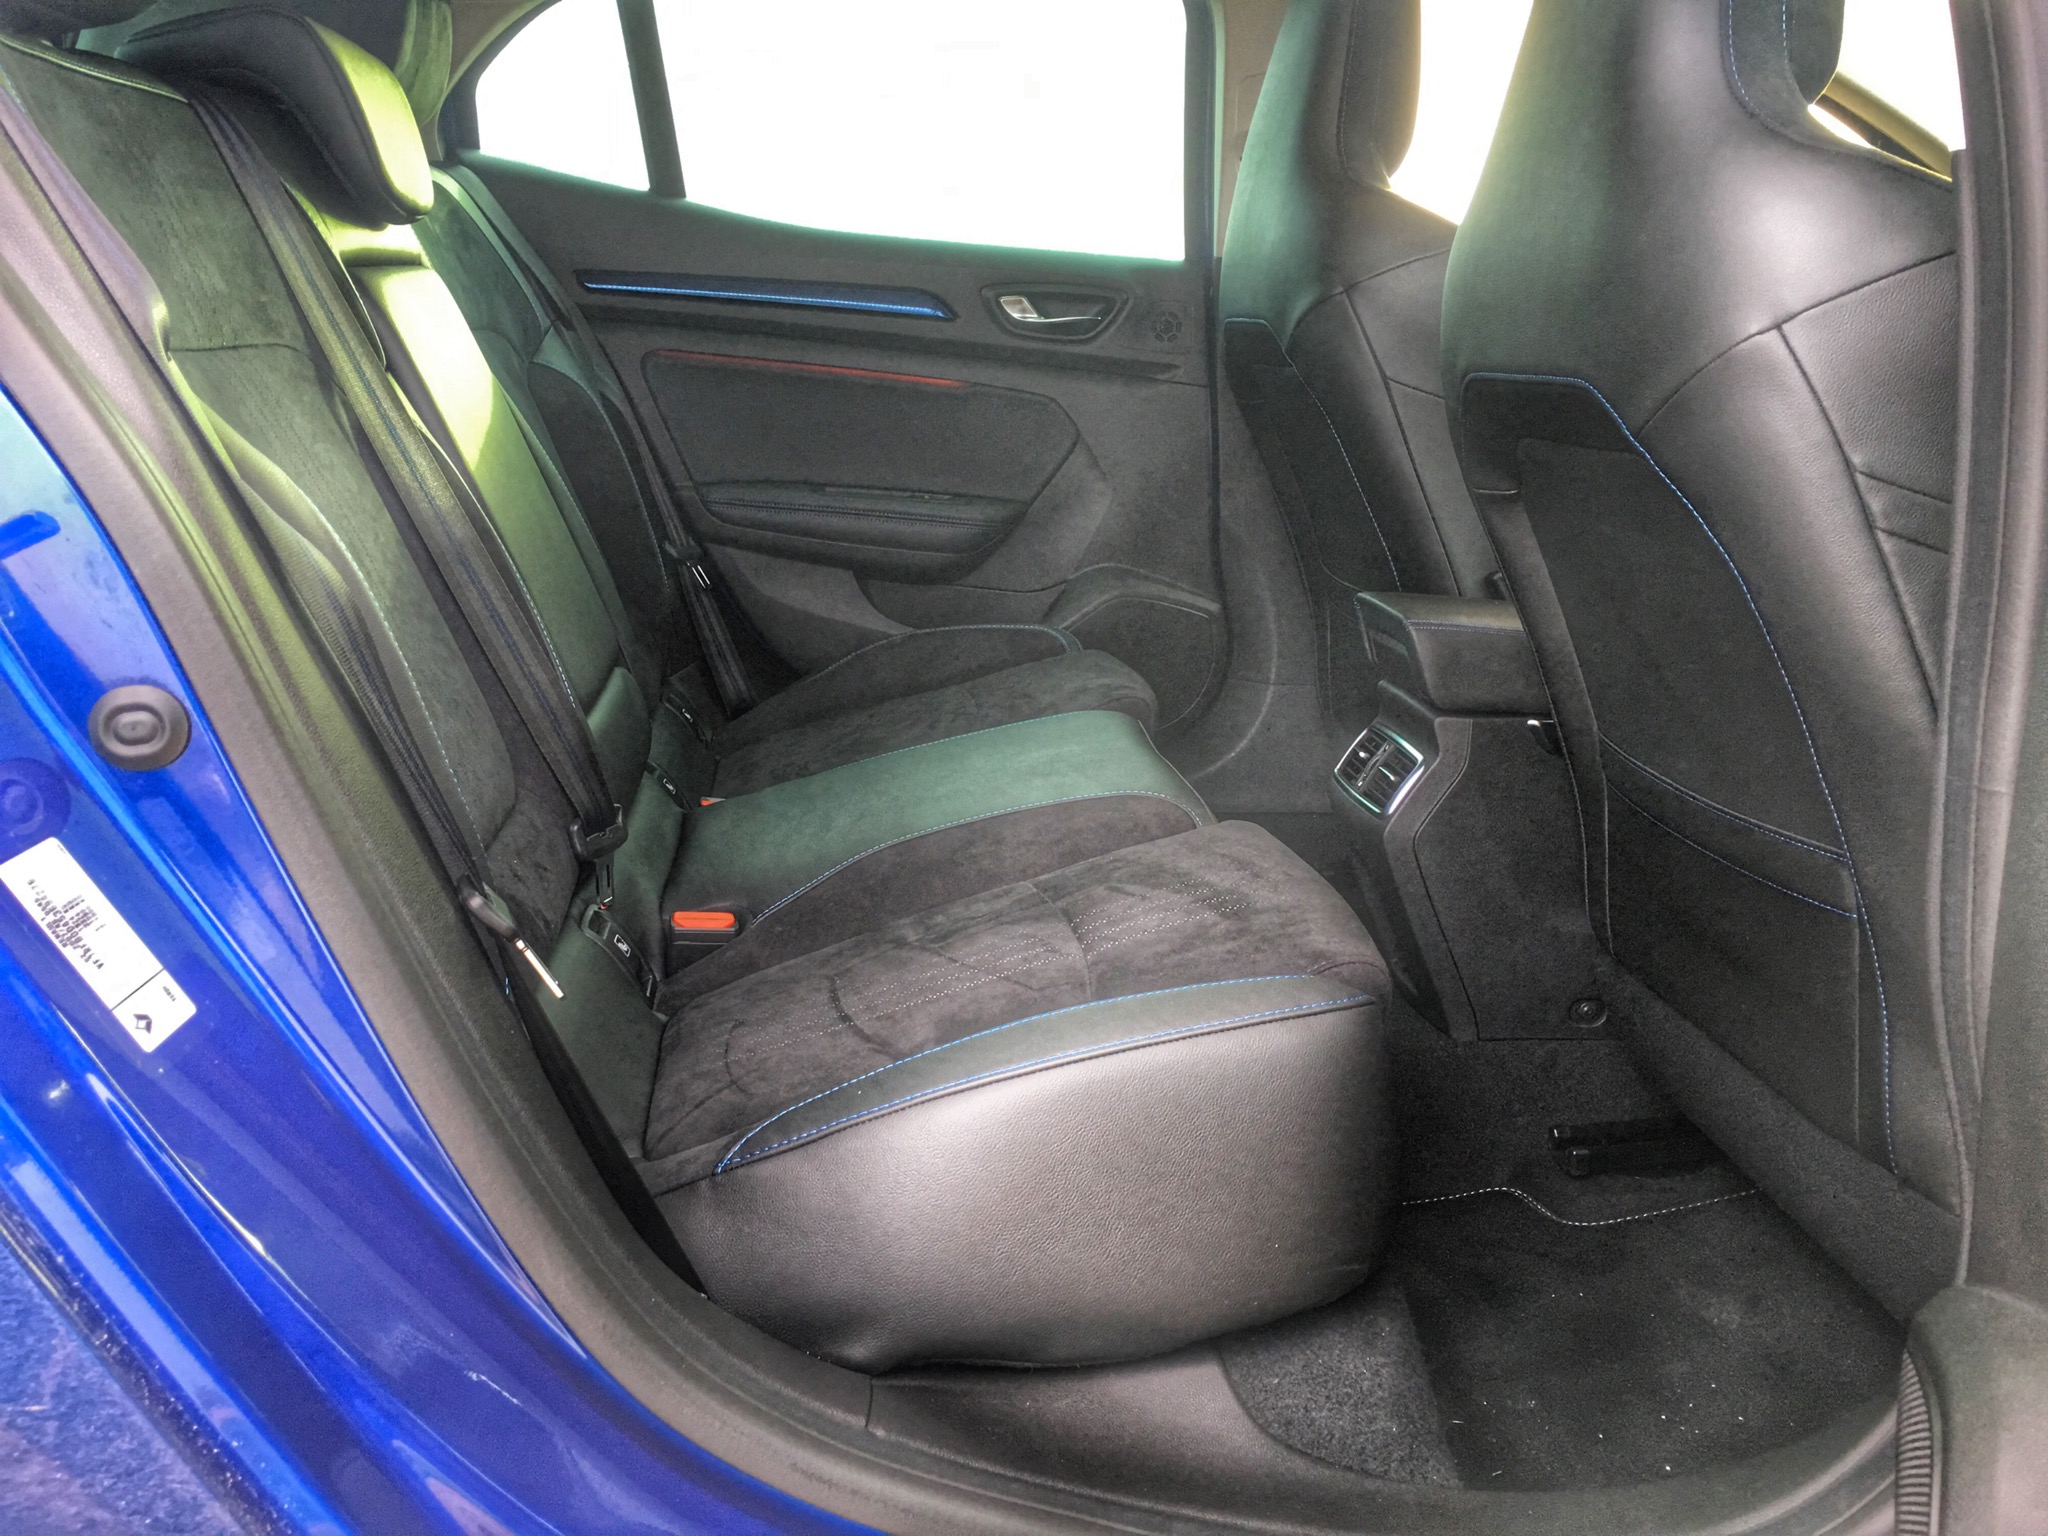 2016 Renault Megane Gt Rear Seats Interior (Photo 10 of 27)